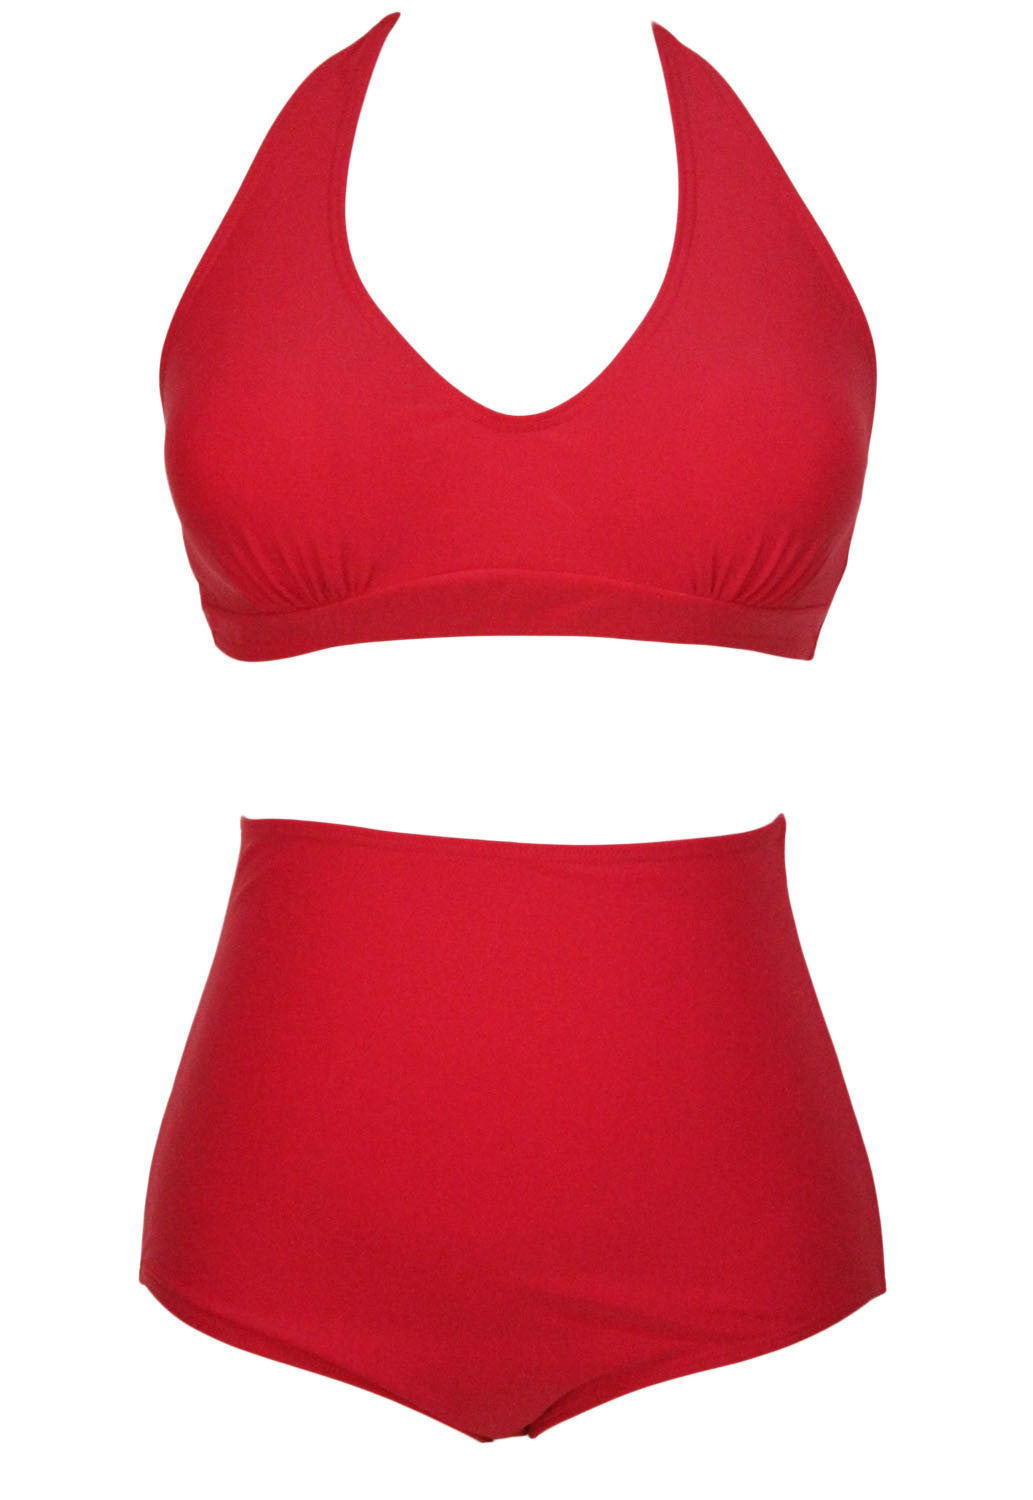 Big'n'Bold Solid Red High-Waisted Halter Bikini Swimsuit